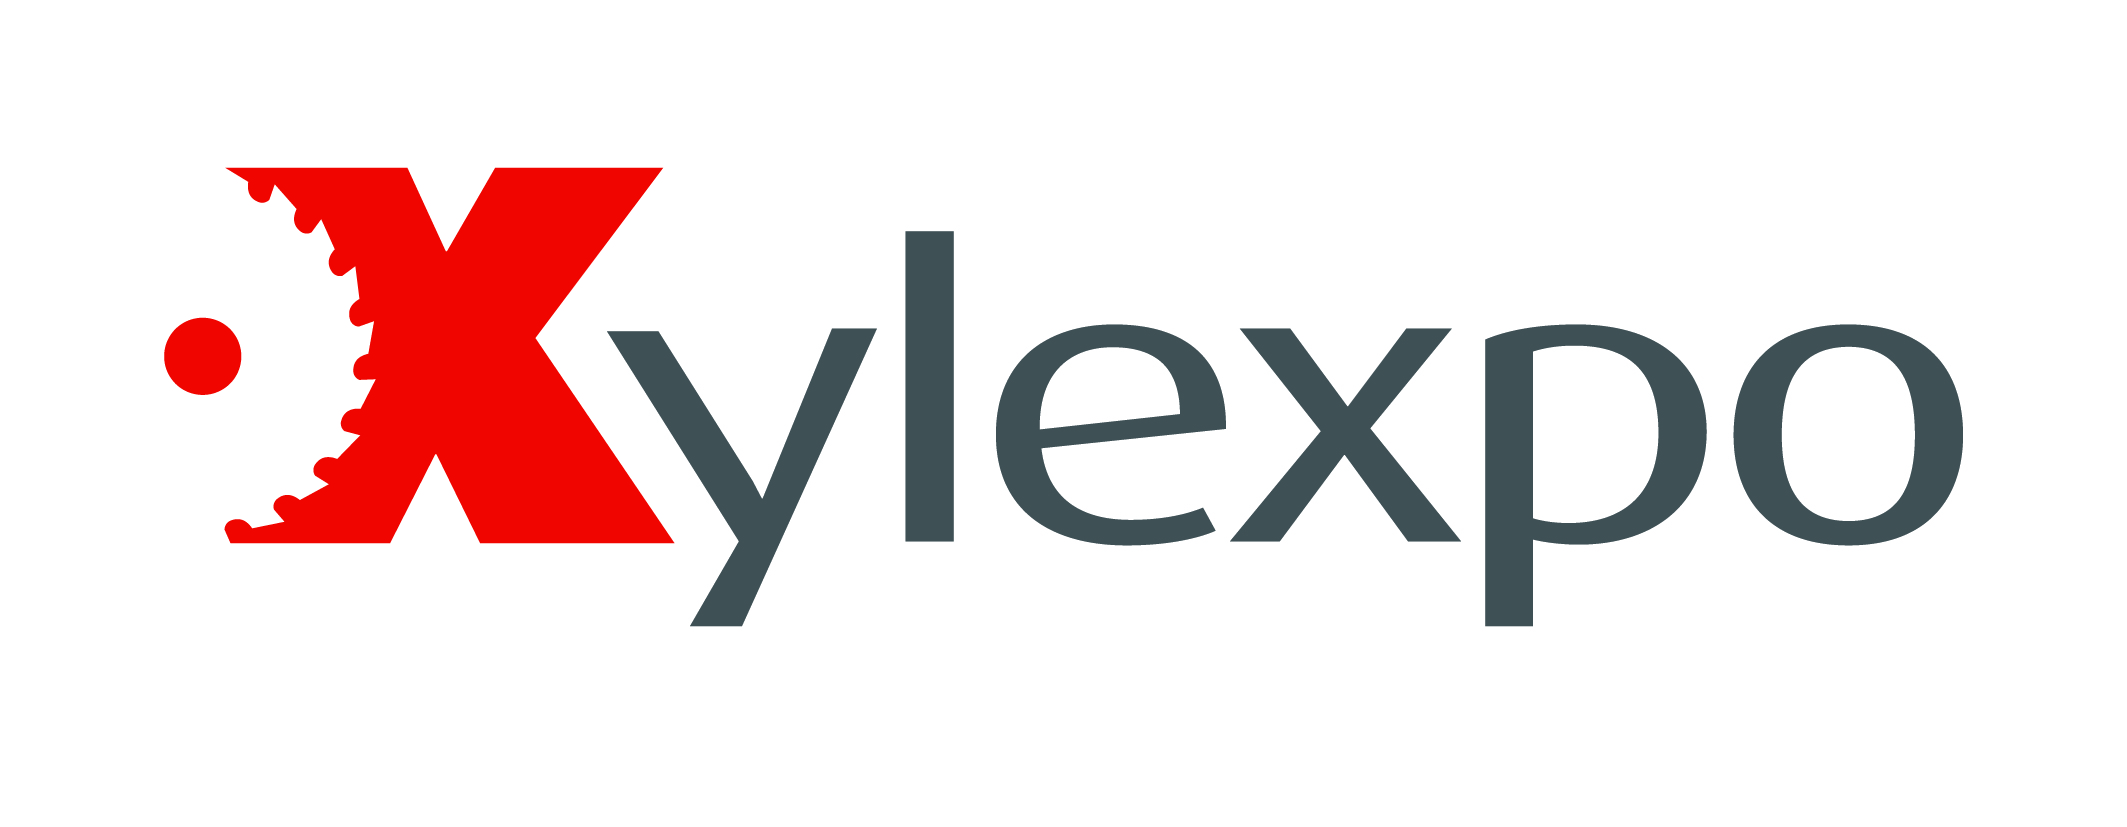 Xylexpo 2020 is renewed: four days of fair and new logo